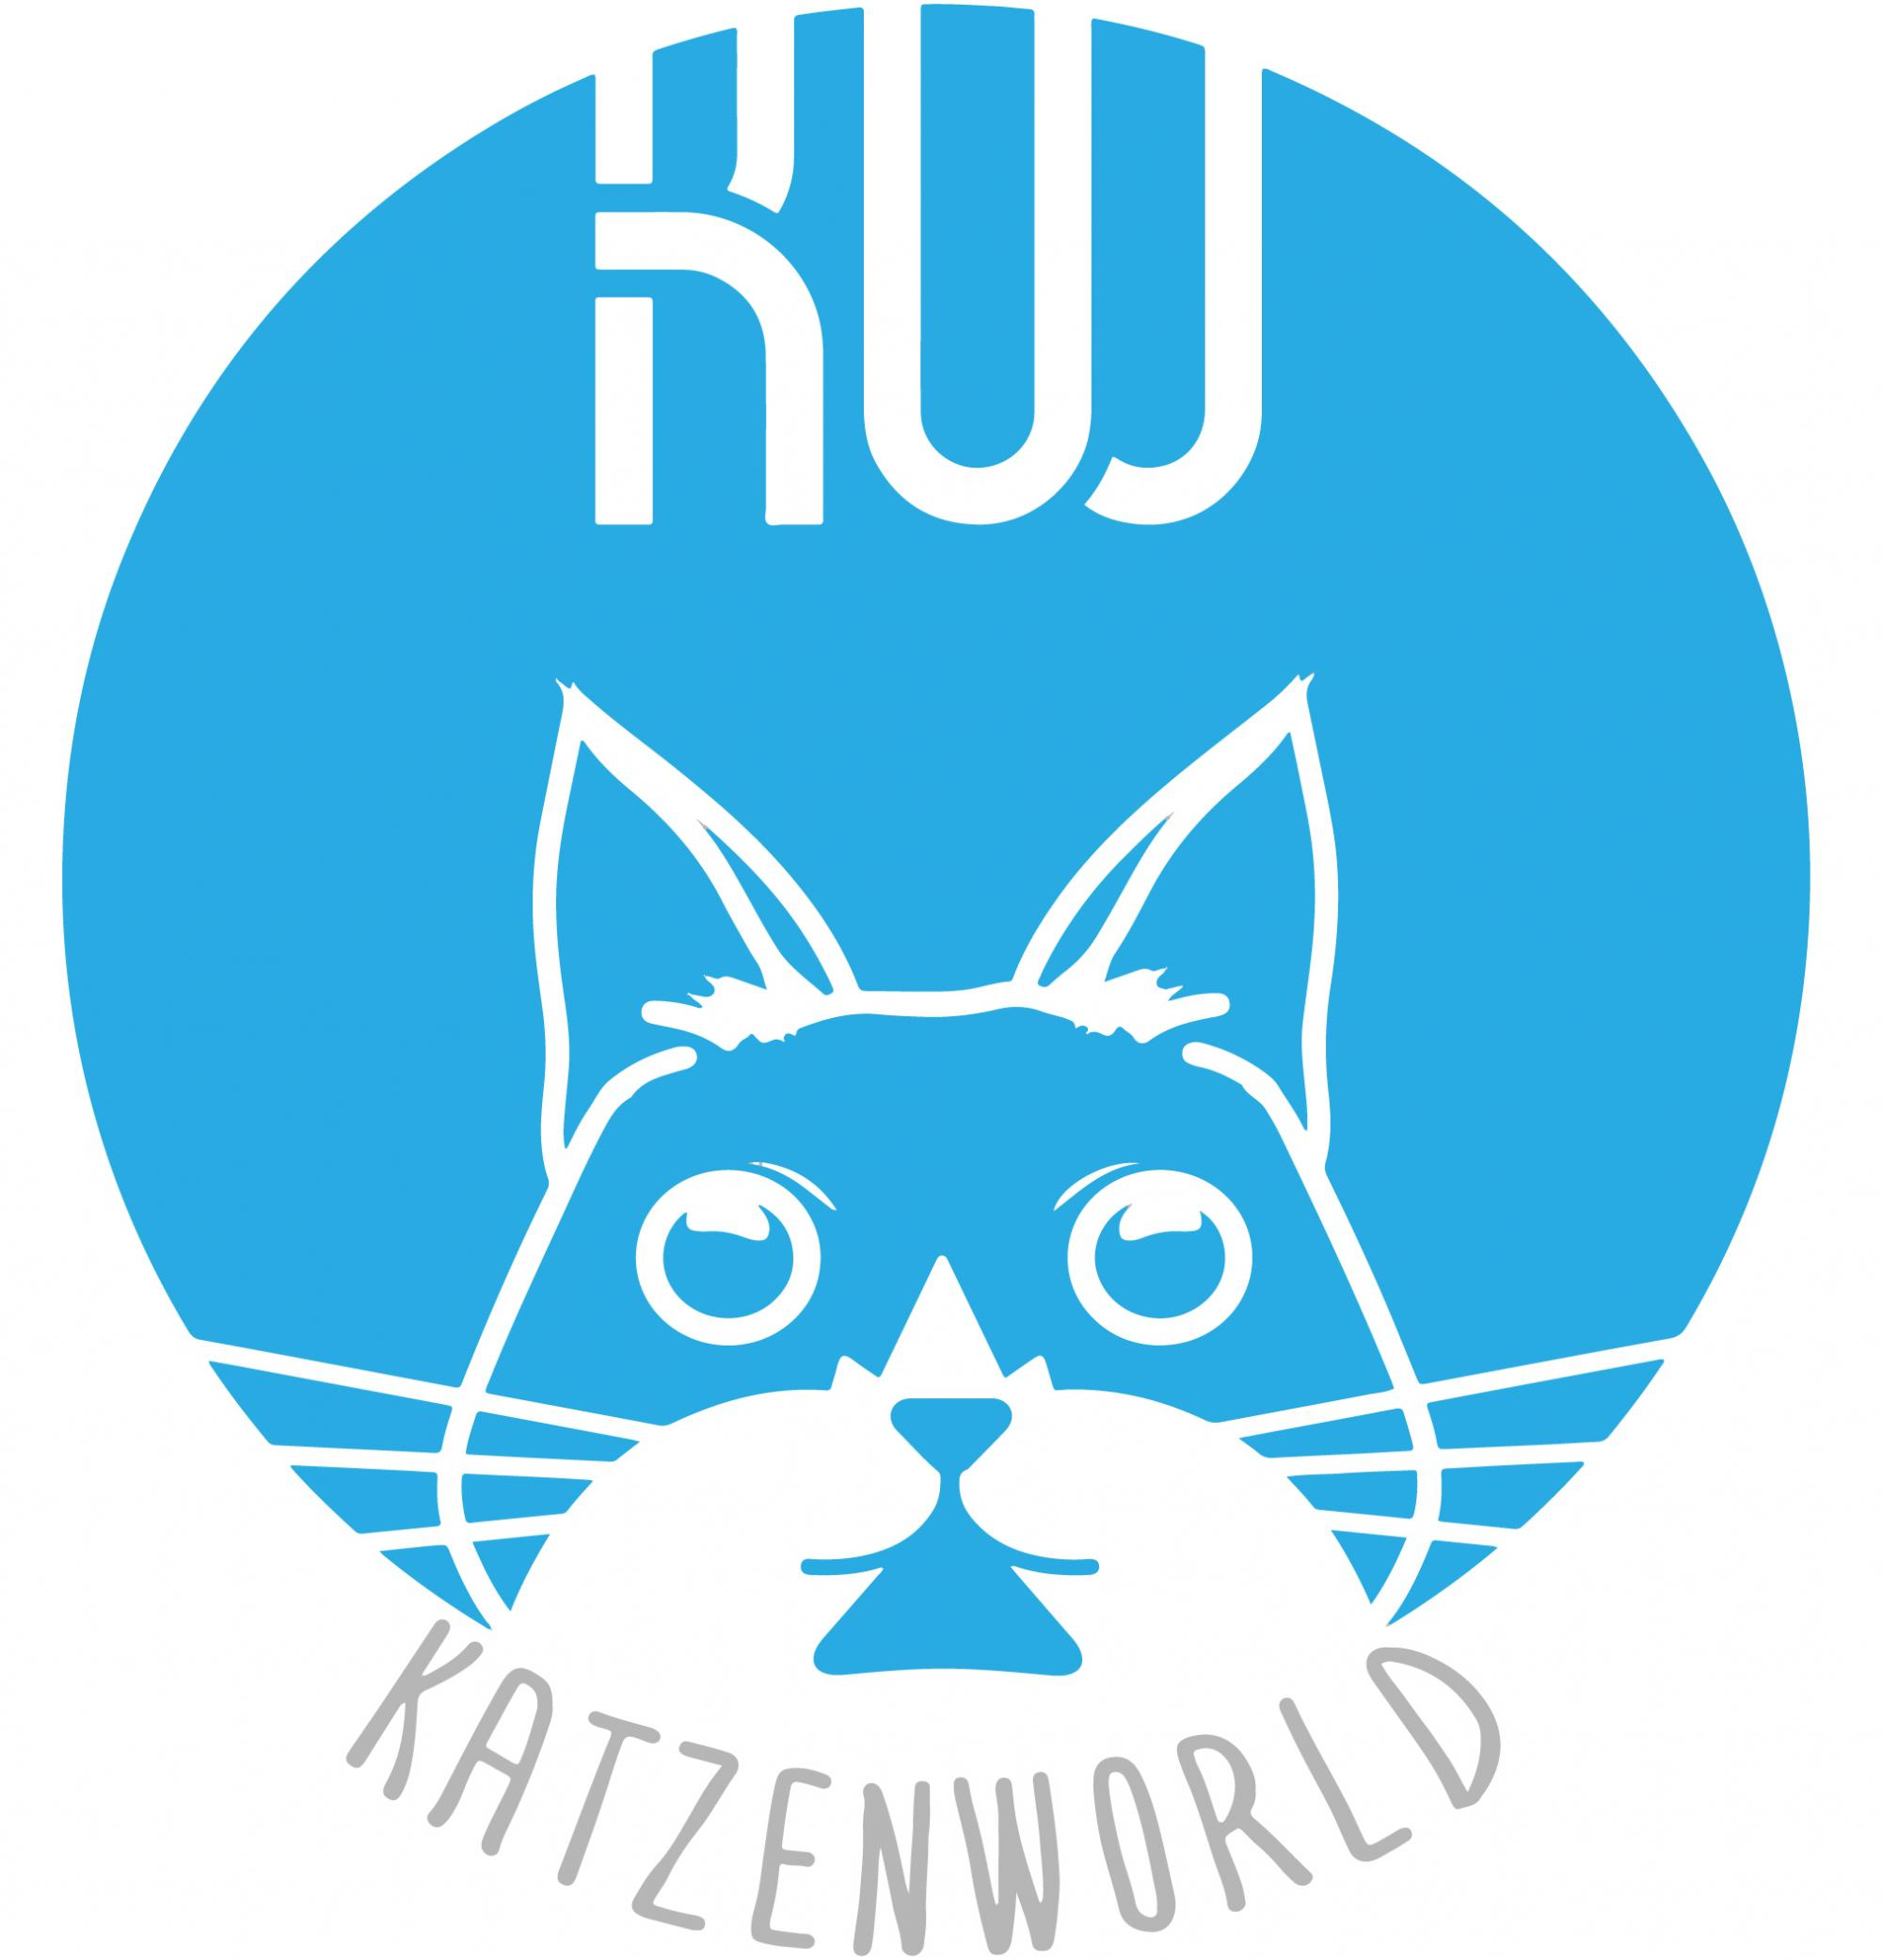 Katzenworld Shop Coupons and Promo Code